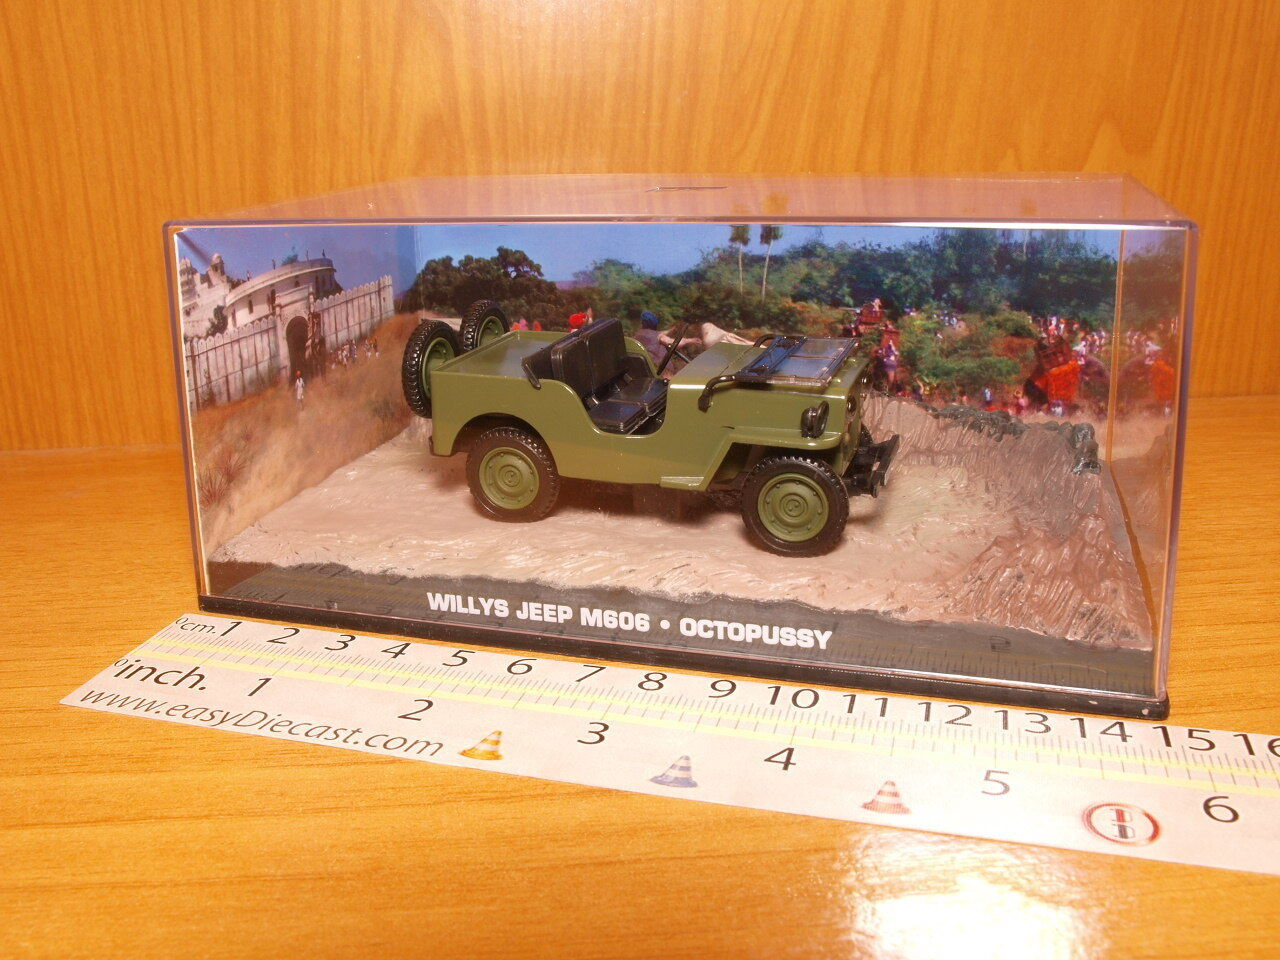 WILLYS JEEP M606 1 43 OCTOPUSSY JAMES BOND 007 CAR